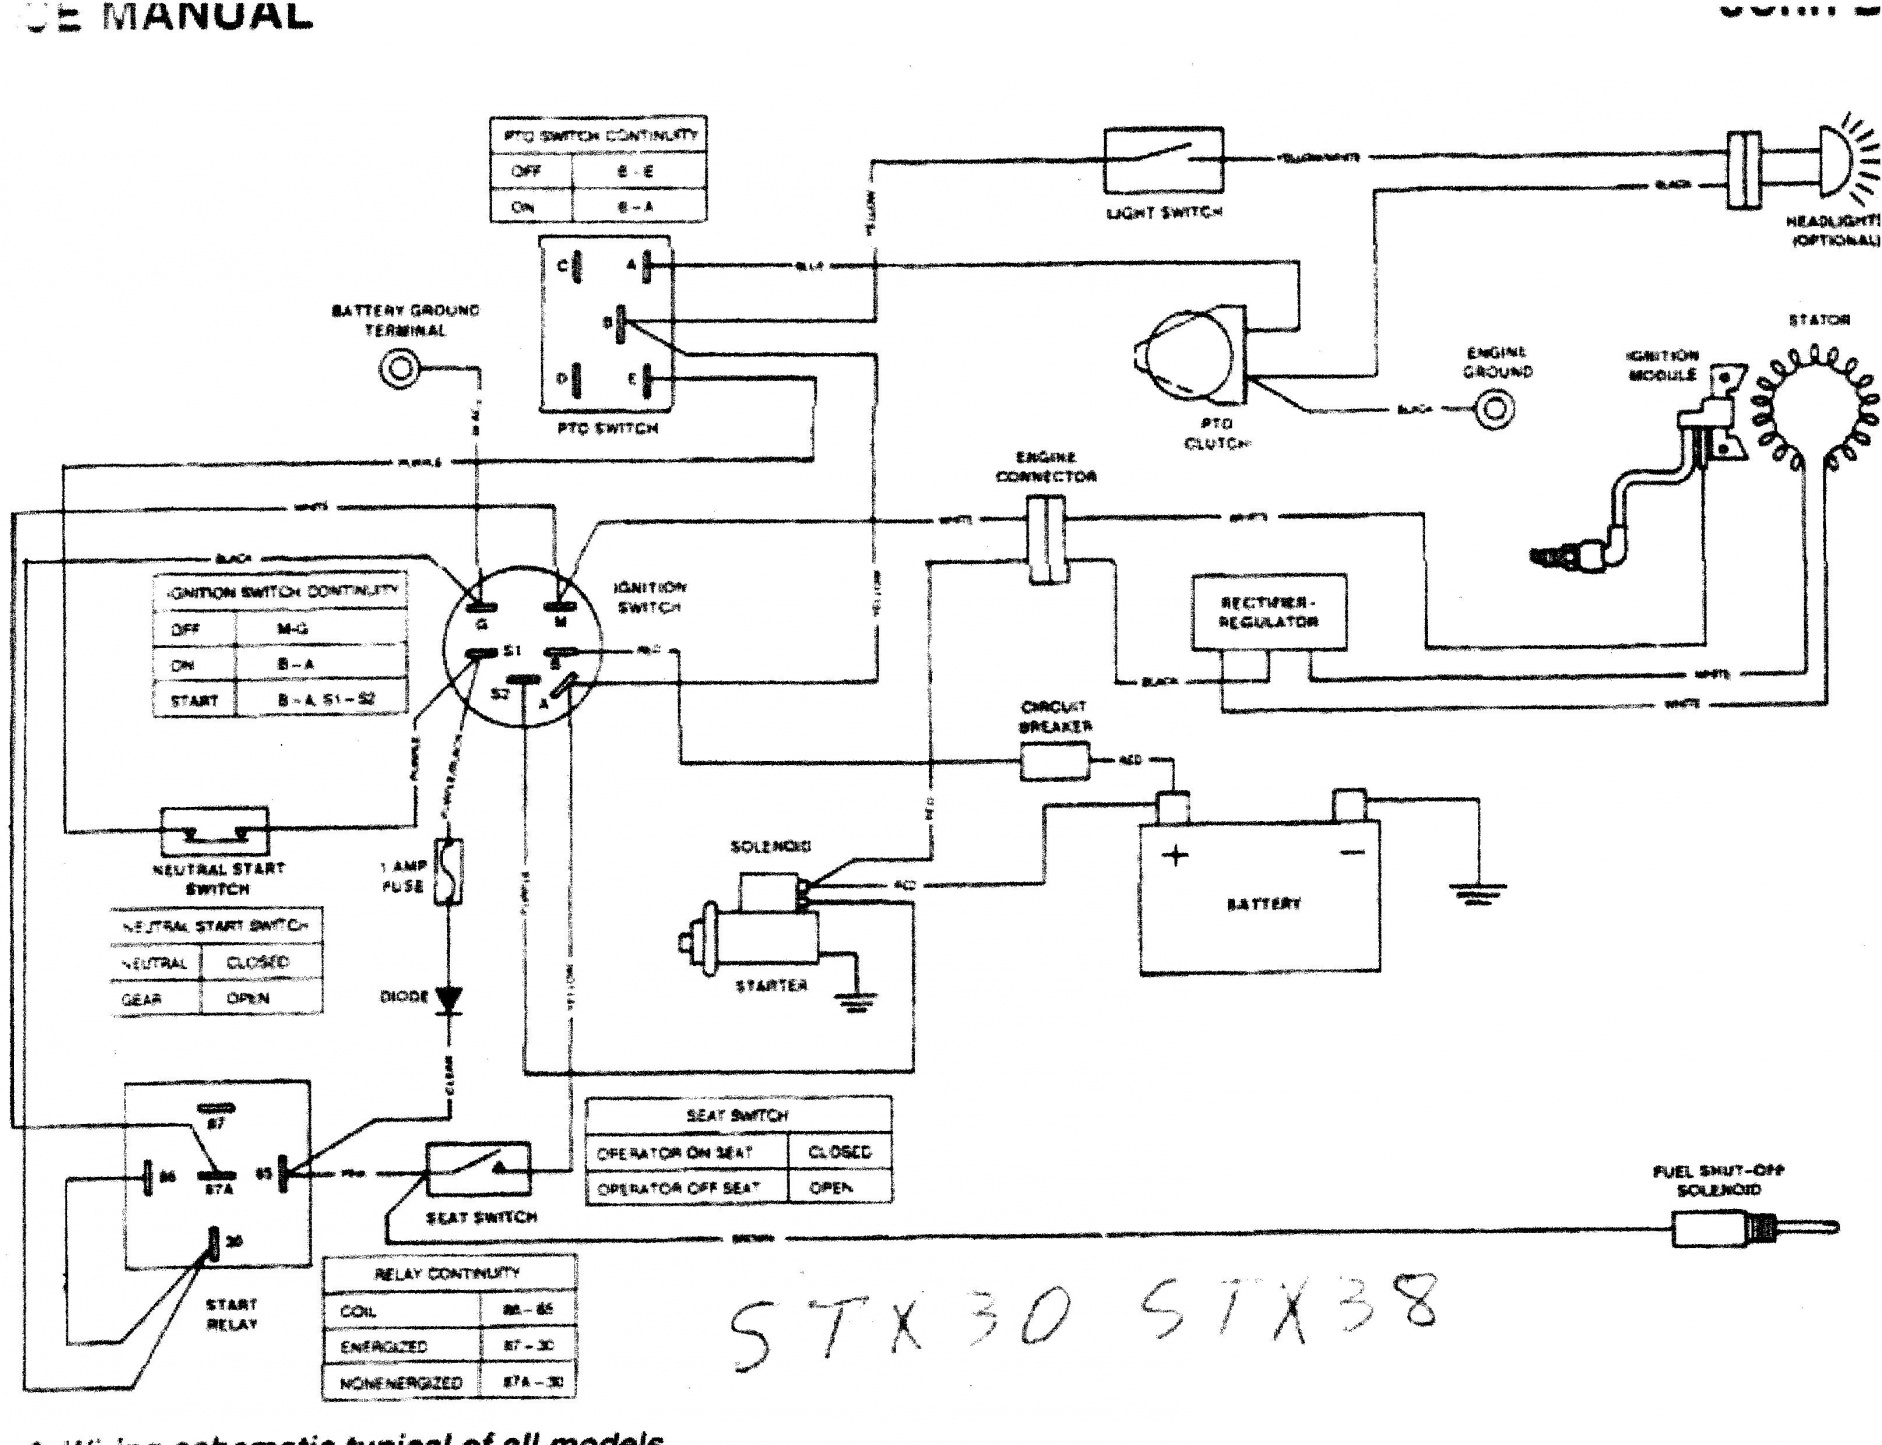 lincoln compact 185 wiring diagram lincoln printable wiring john deere 2040 ignition wiring diagram 07 e250 fuse box diagram source